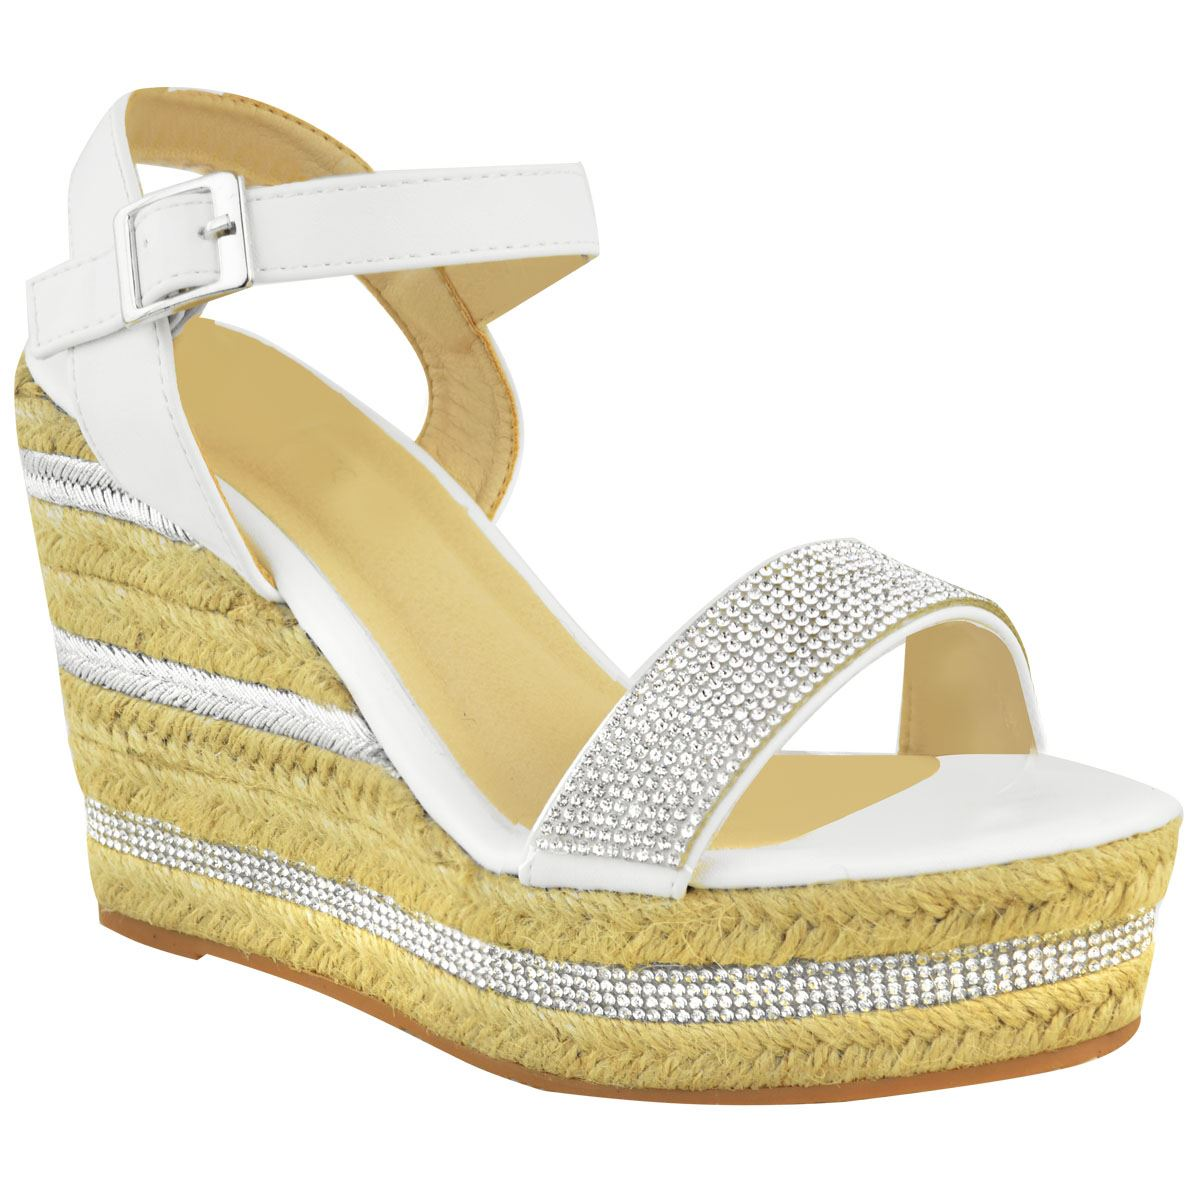 Womens-Ladies-Wedged-High-Heel-Sandals-Raffia-Diamante-Party-Shoes-Summer-Size thumbnail 13